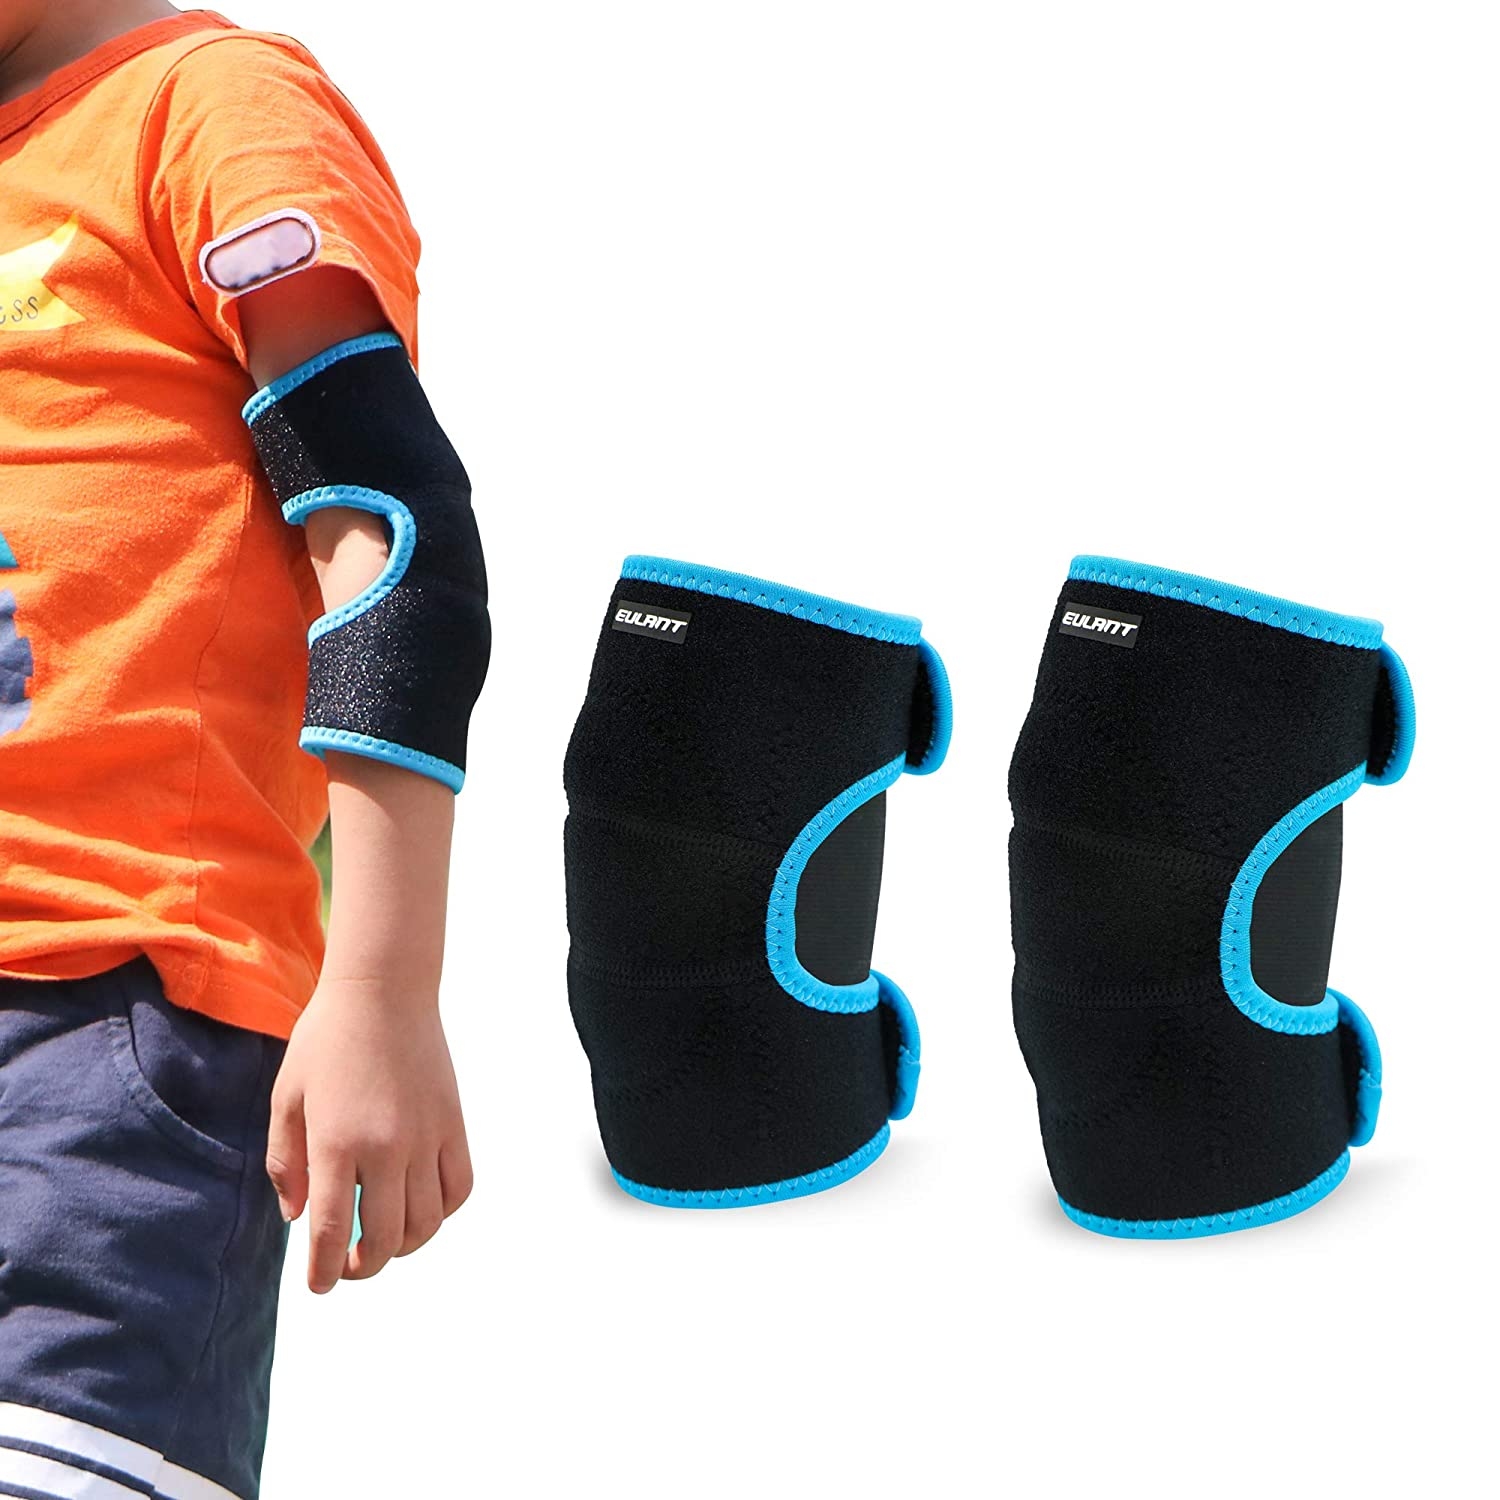 Sborter Protective Knee Pads for Children, Soft Adjustable Kids Elbow Pads with Thick Sponge, Protect The Knee Elbow, 1 Pair